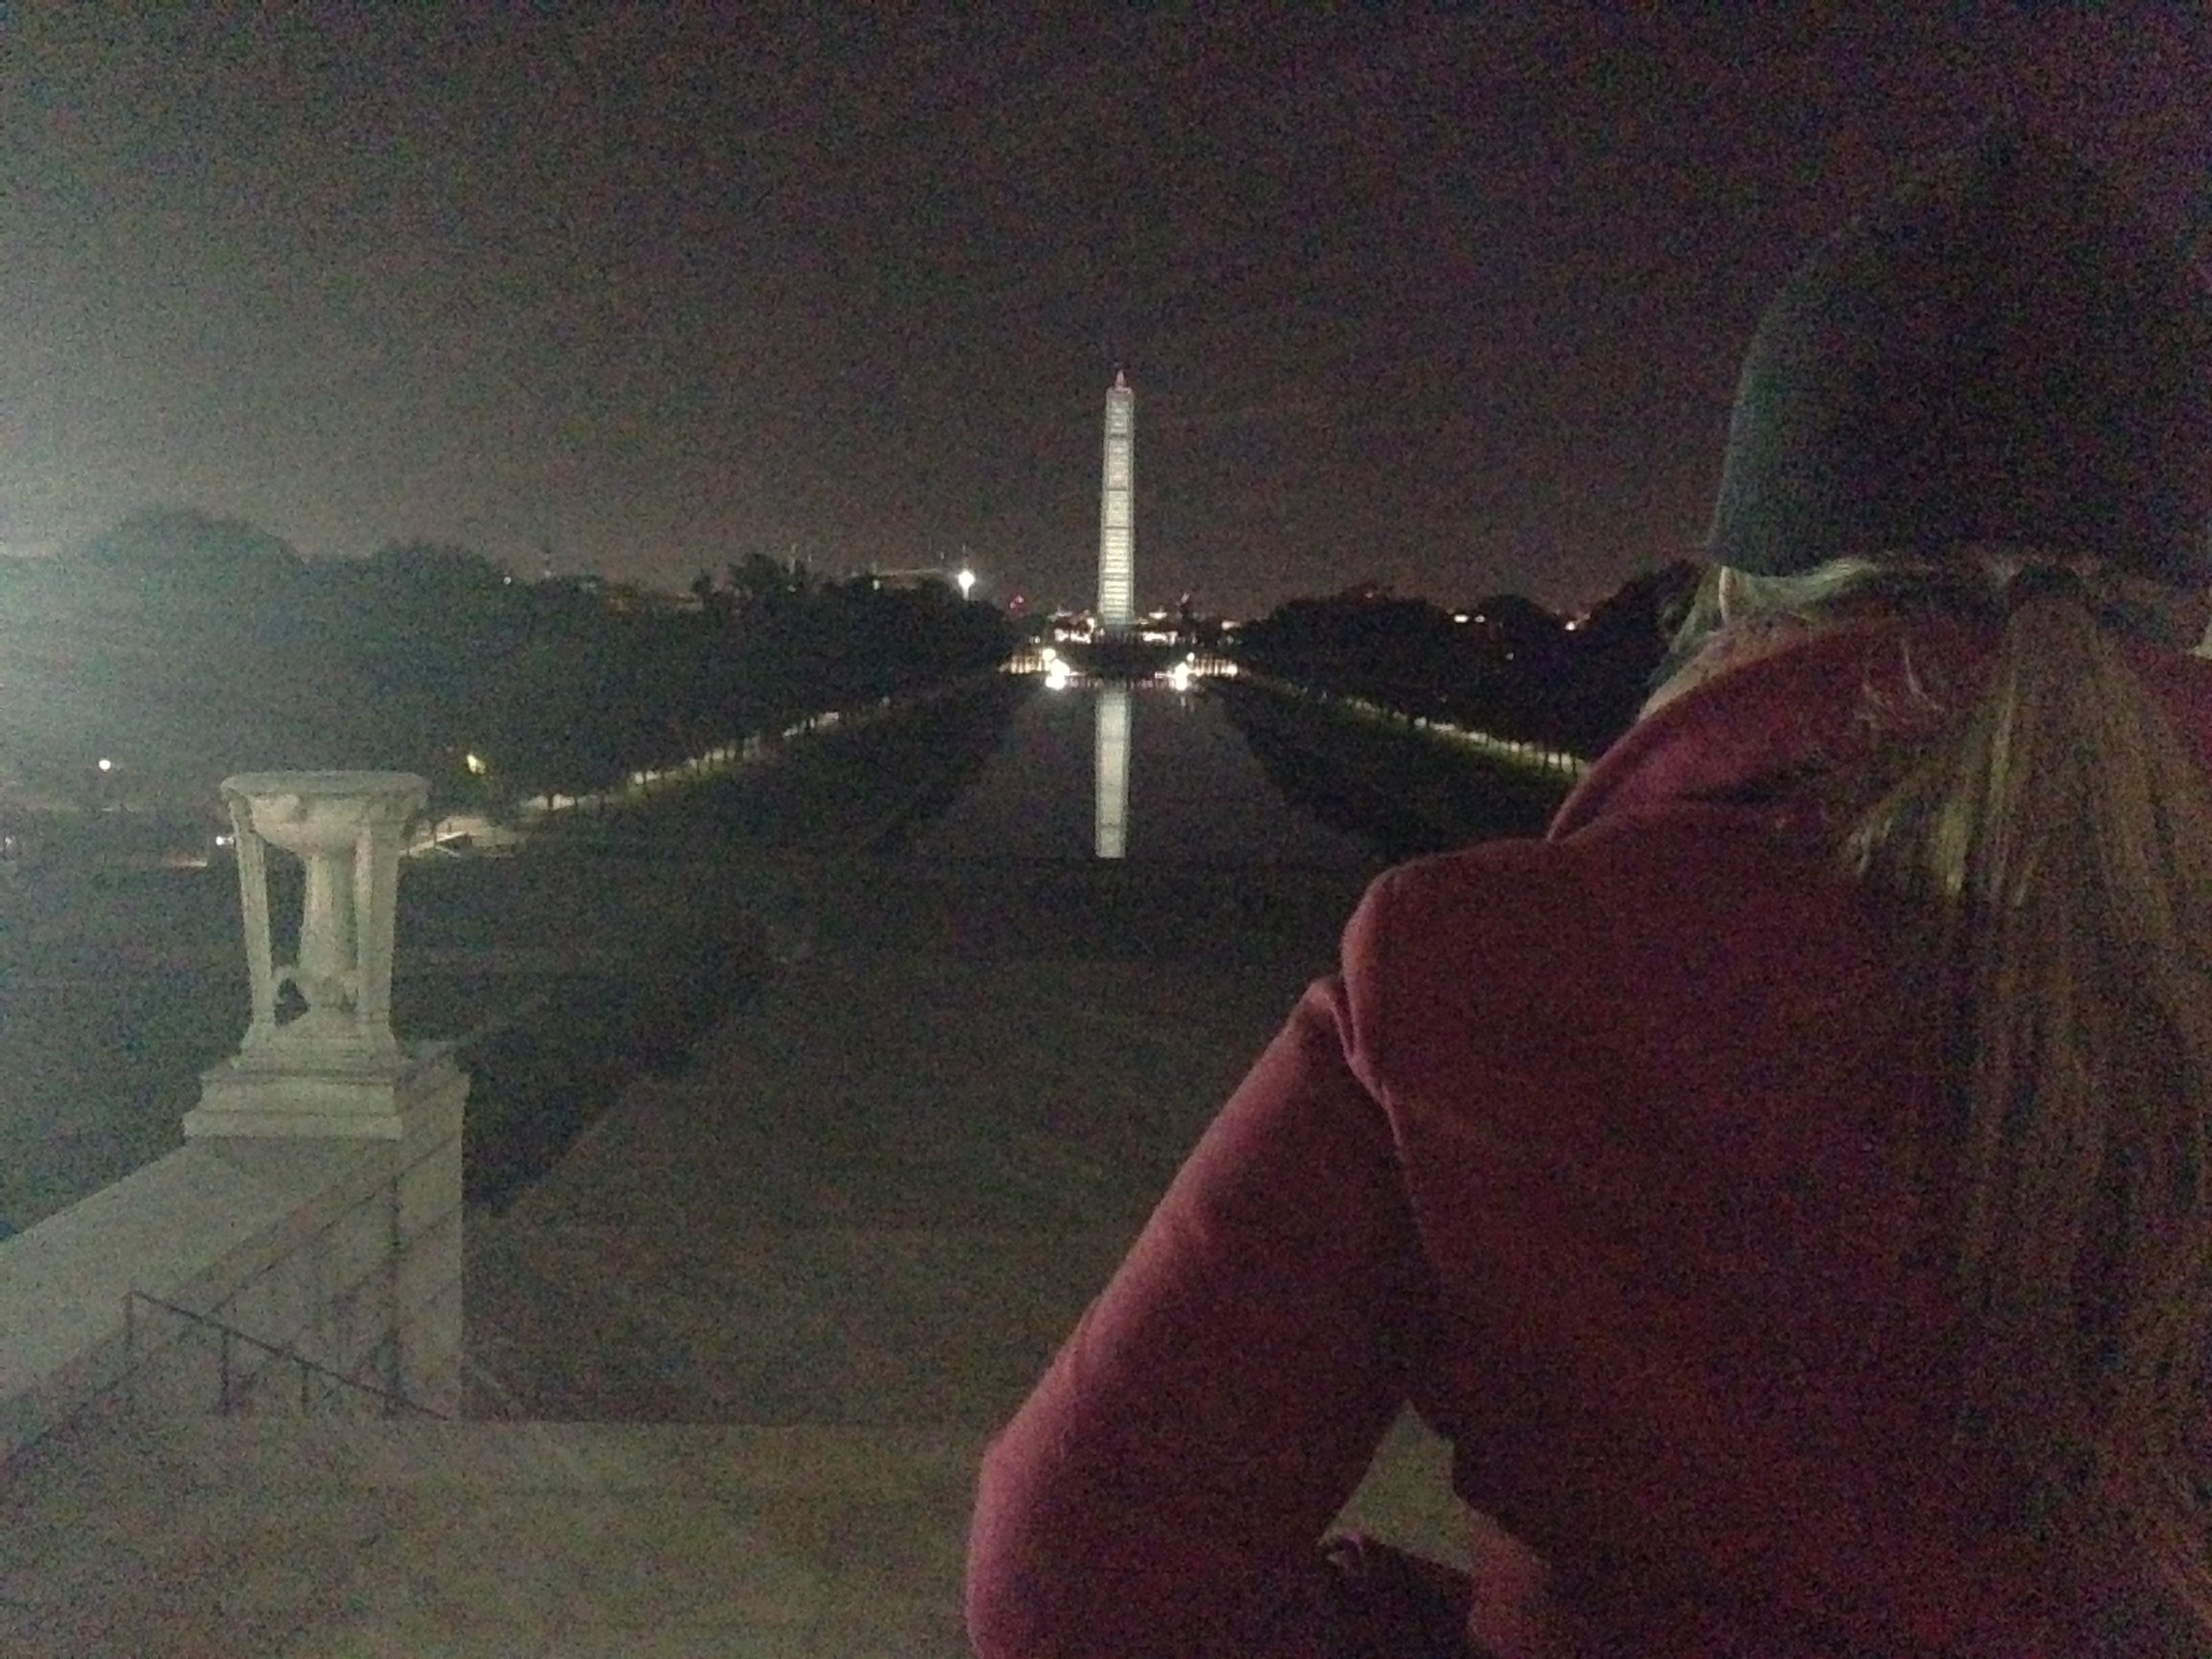 Me at the Lincoln Memorial in DC at night taking it all in how many incredible events have taken place here.